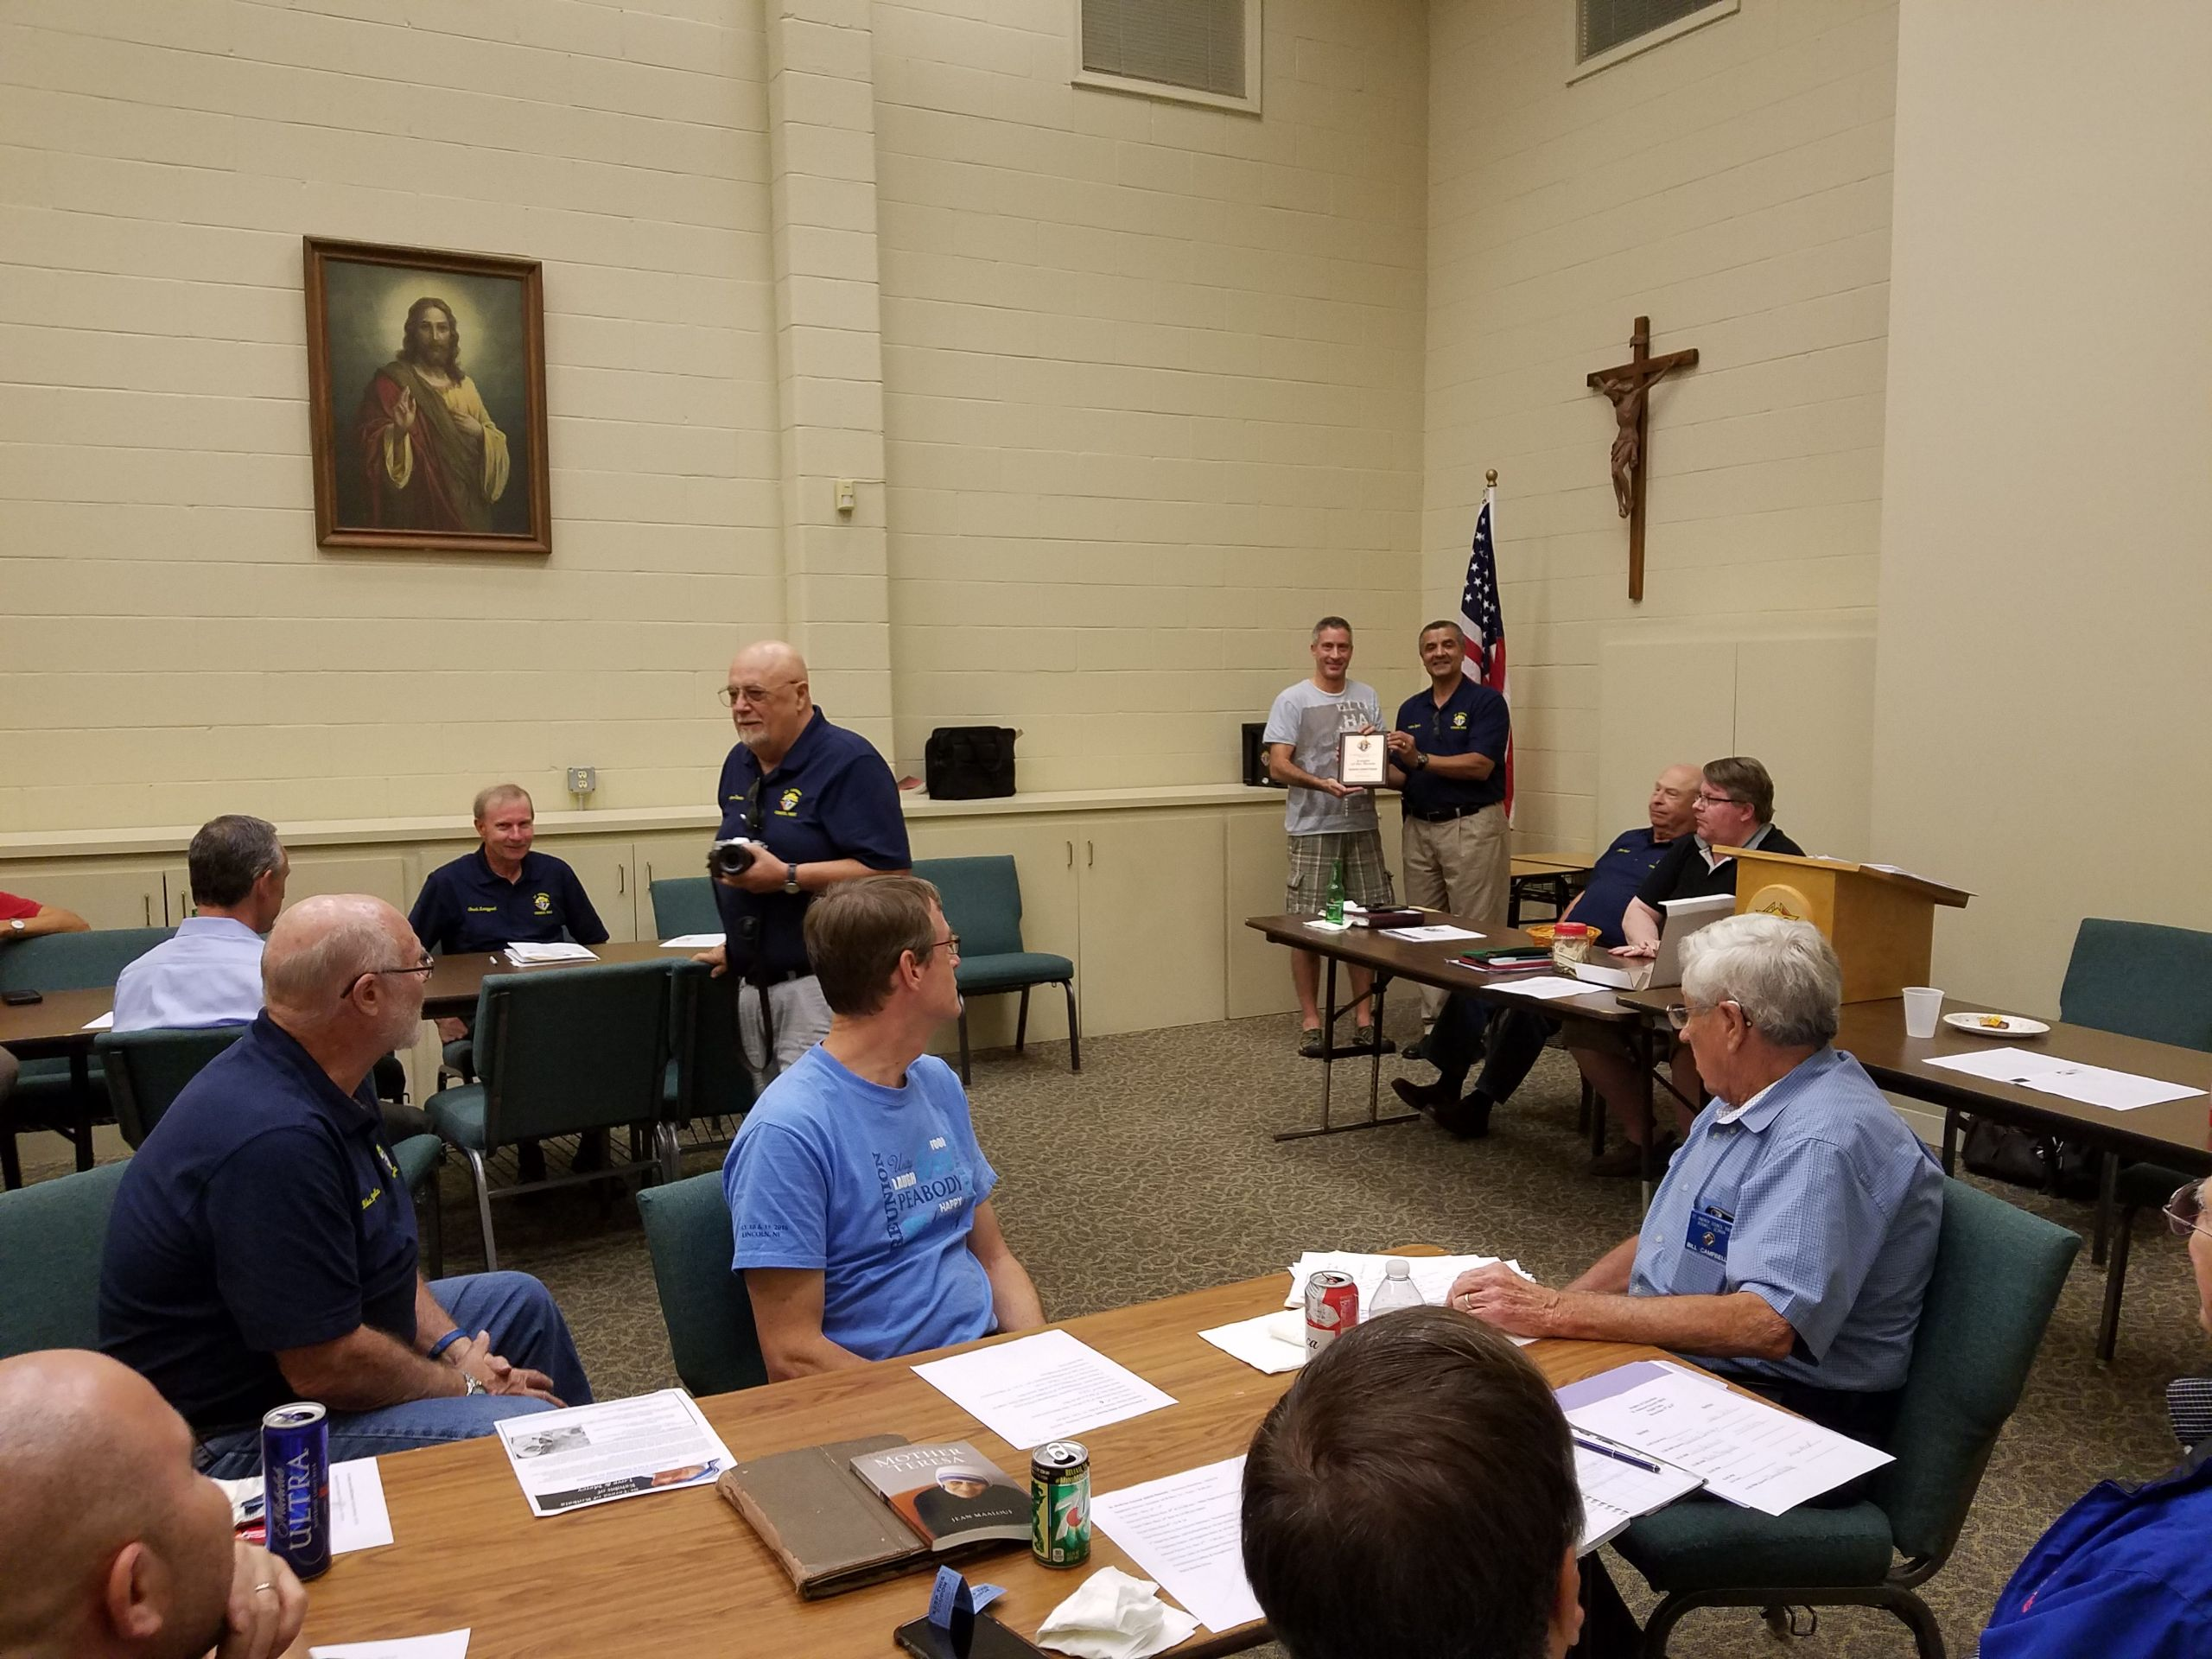 Knights of Columbus meeting.